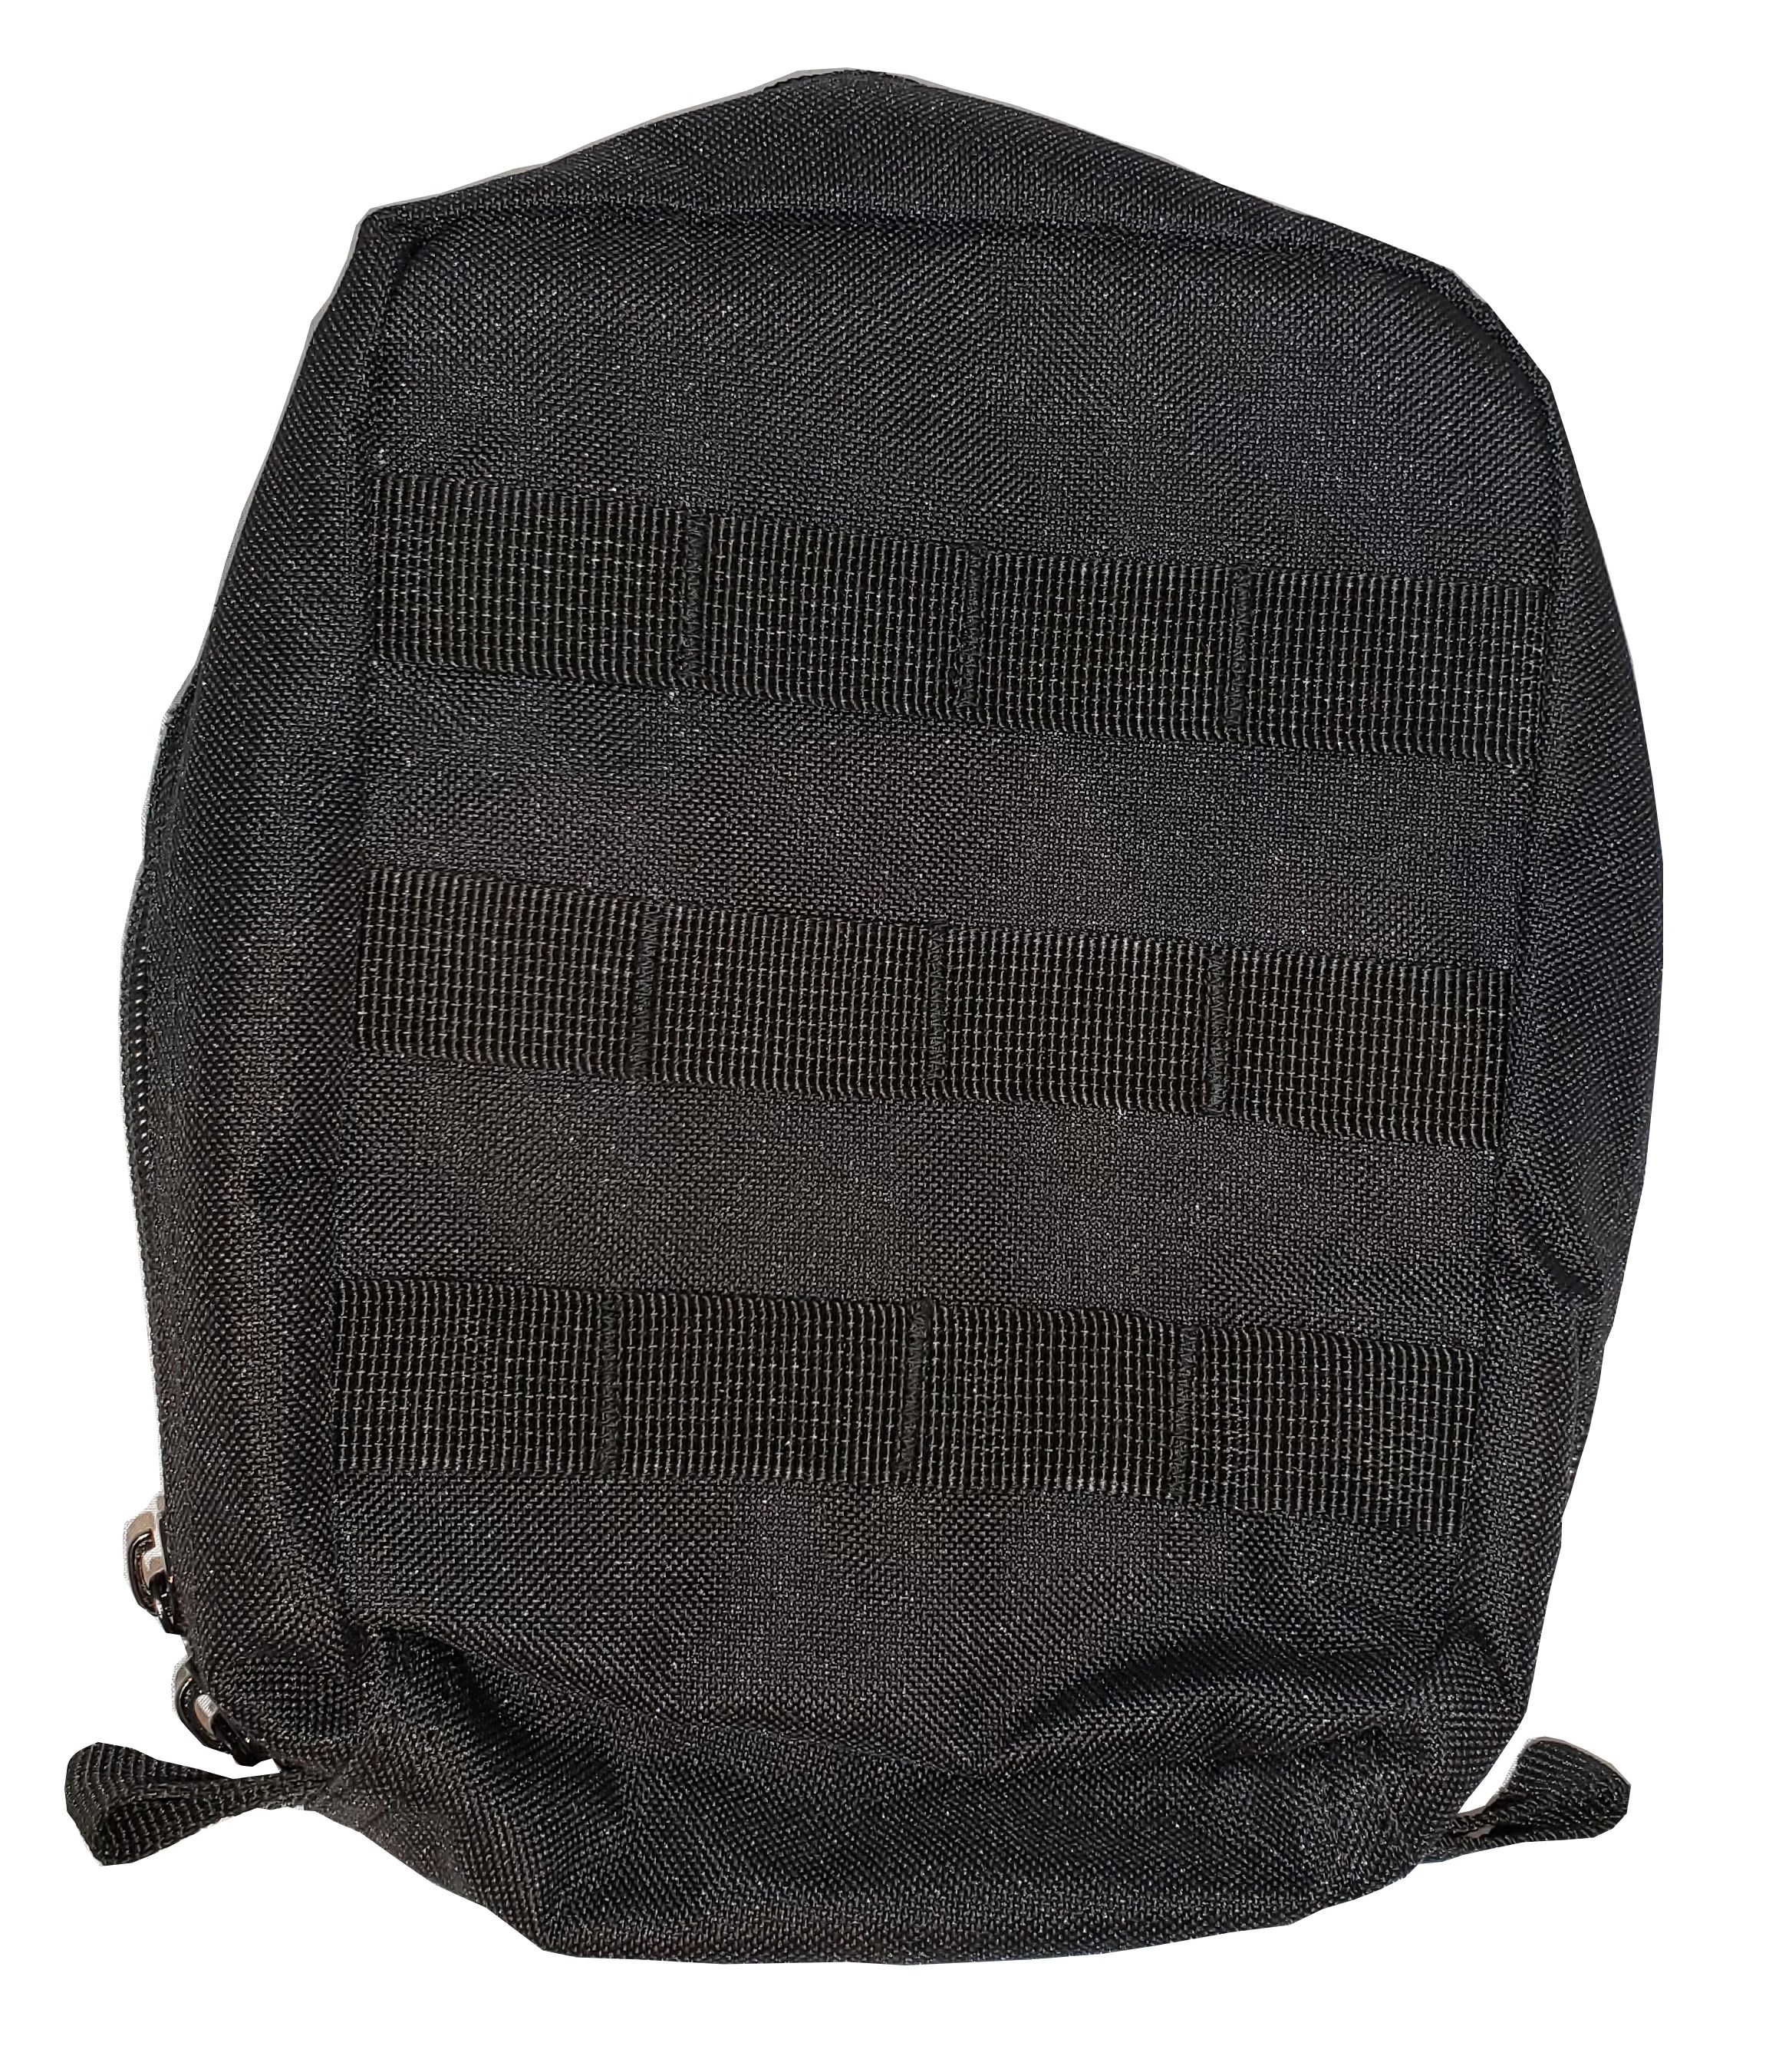 Fully molle compatible bag